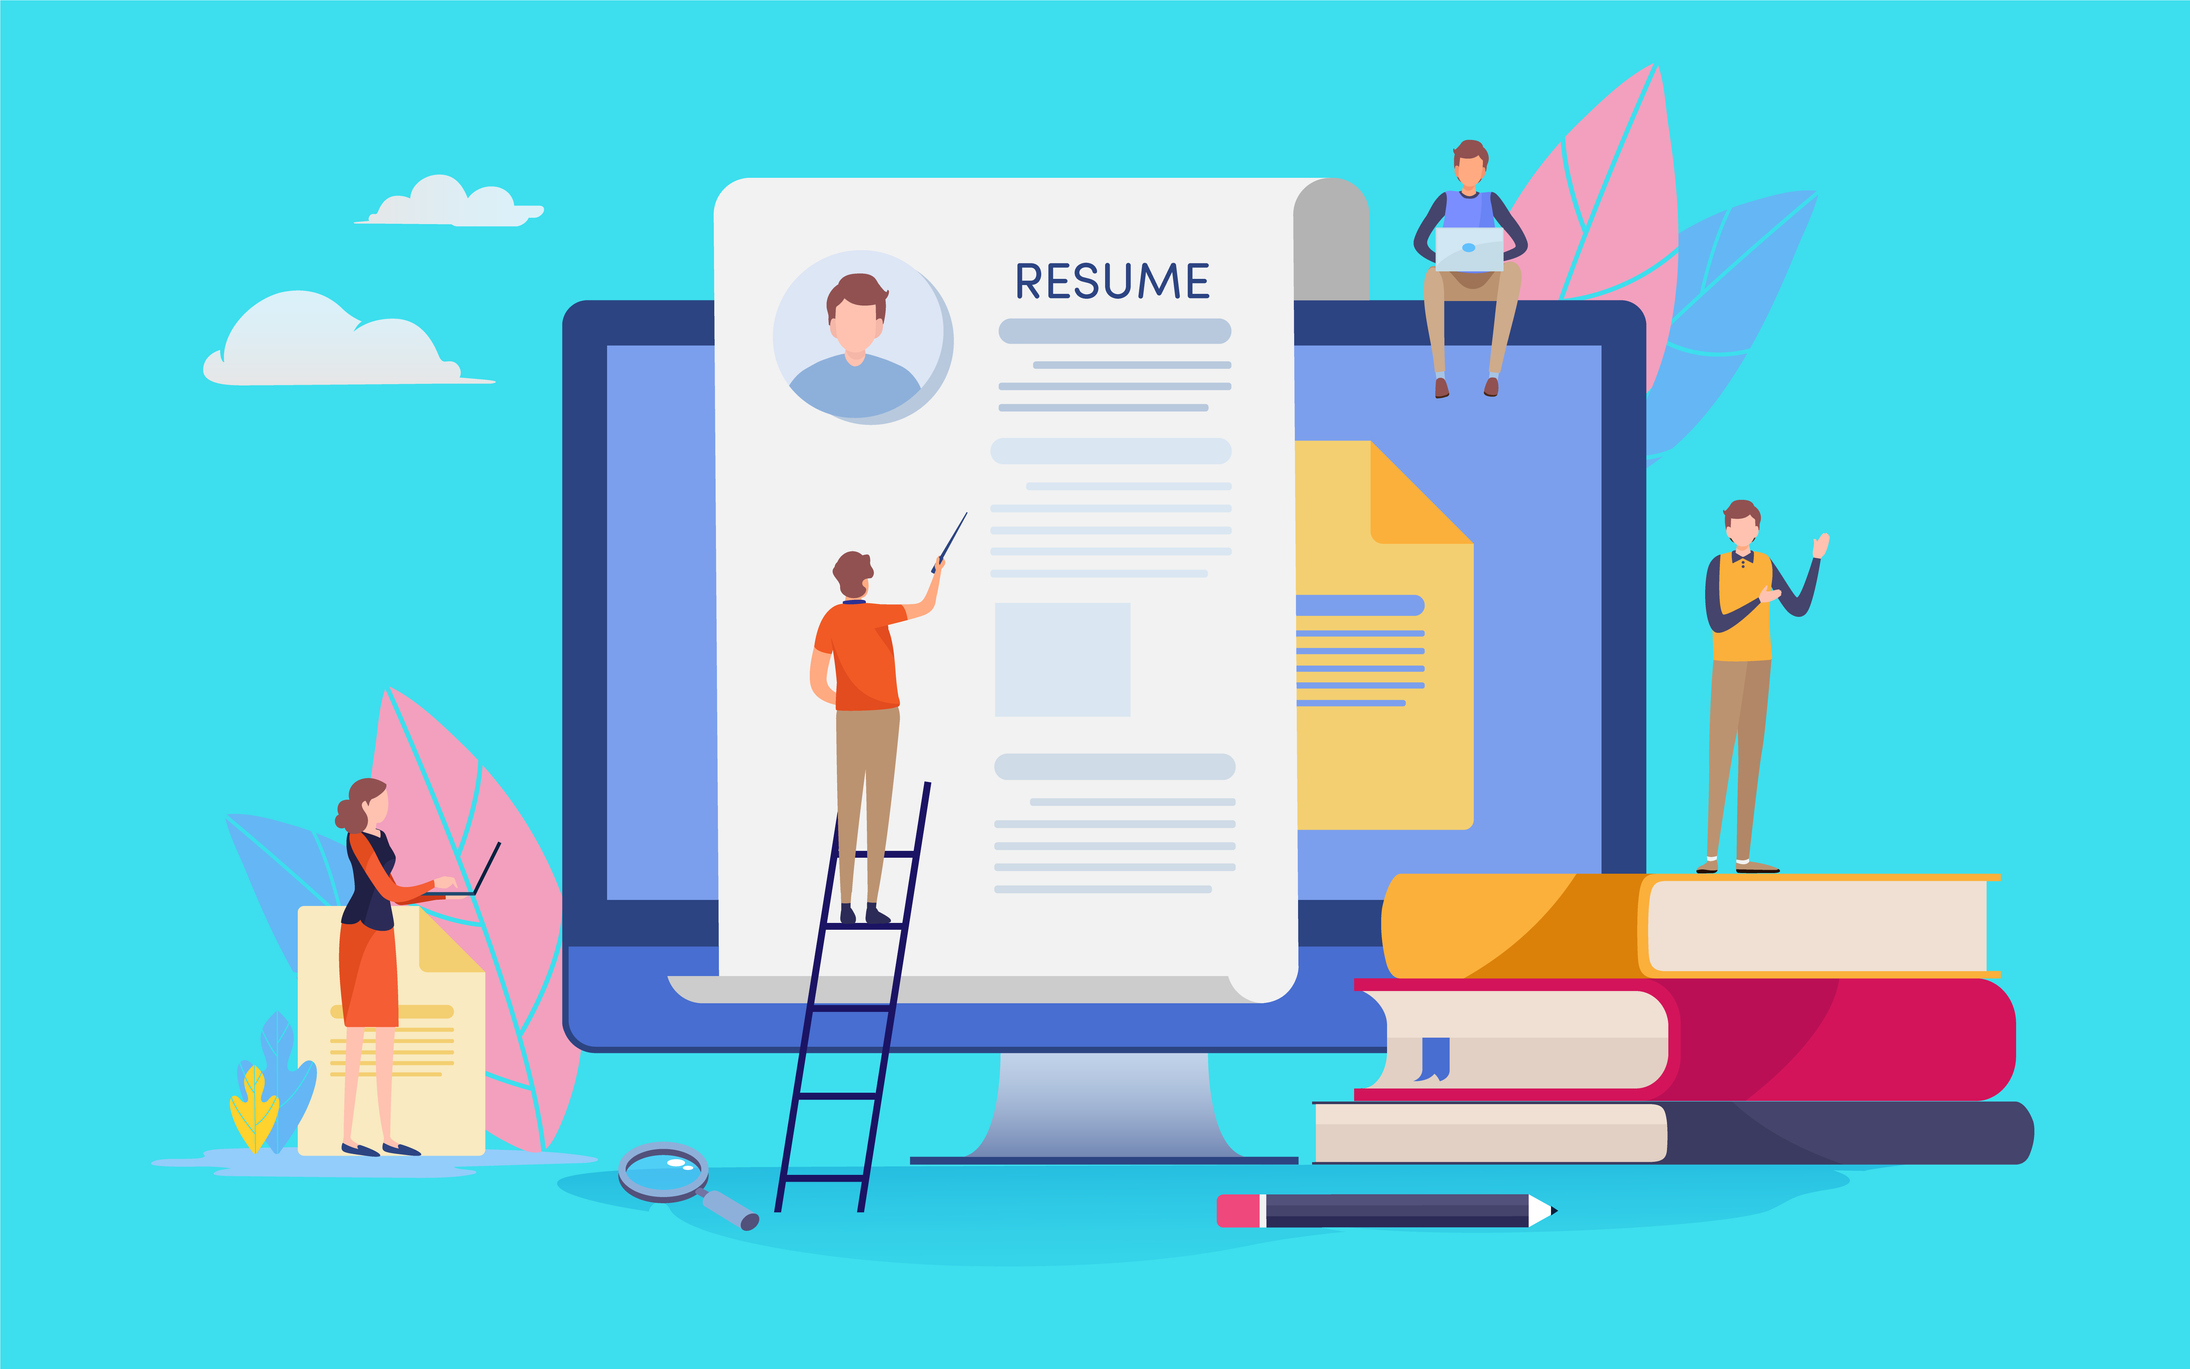 Prioritize the right information in your resume